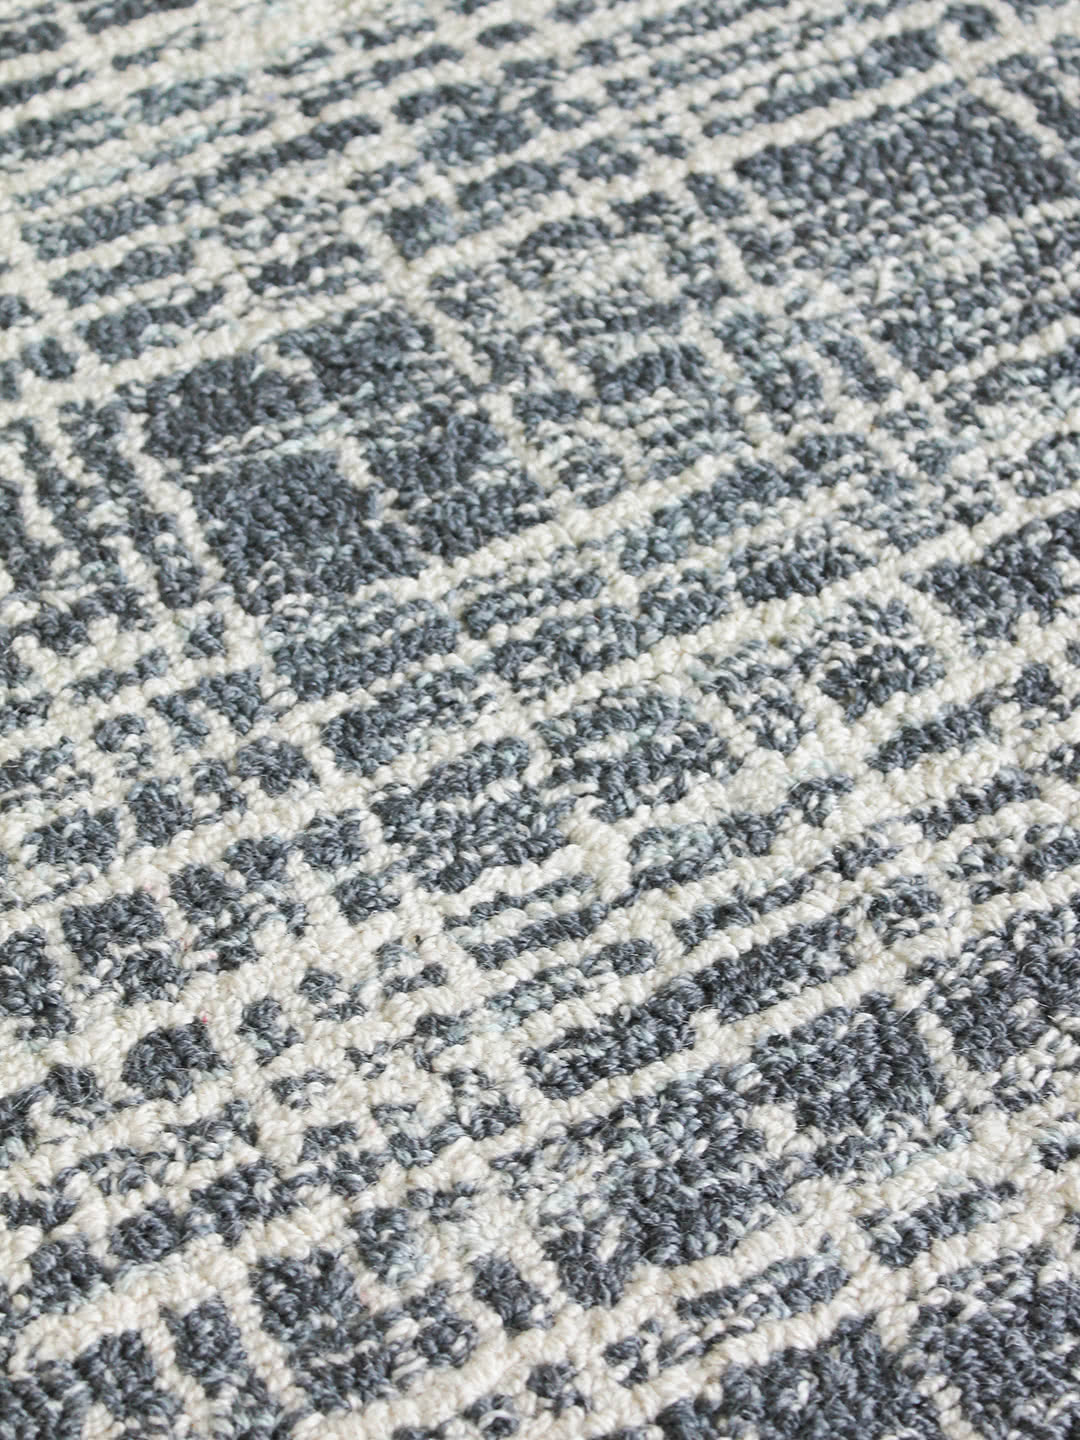 Aegean Blue detail wool blend rugs Perth